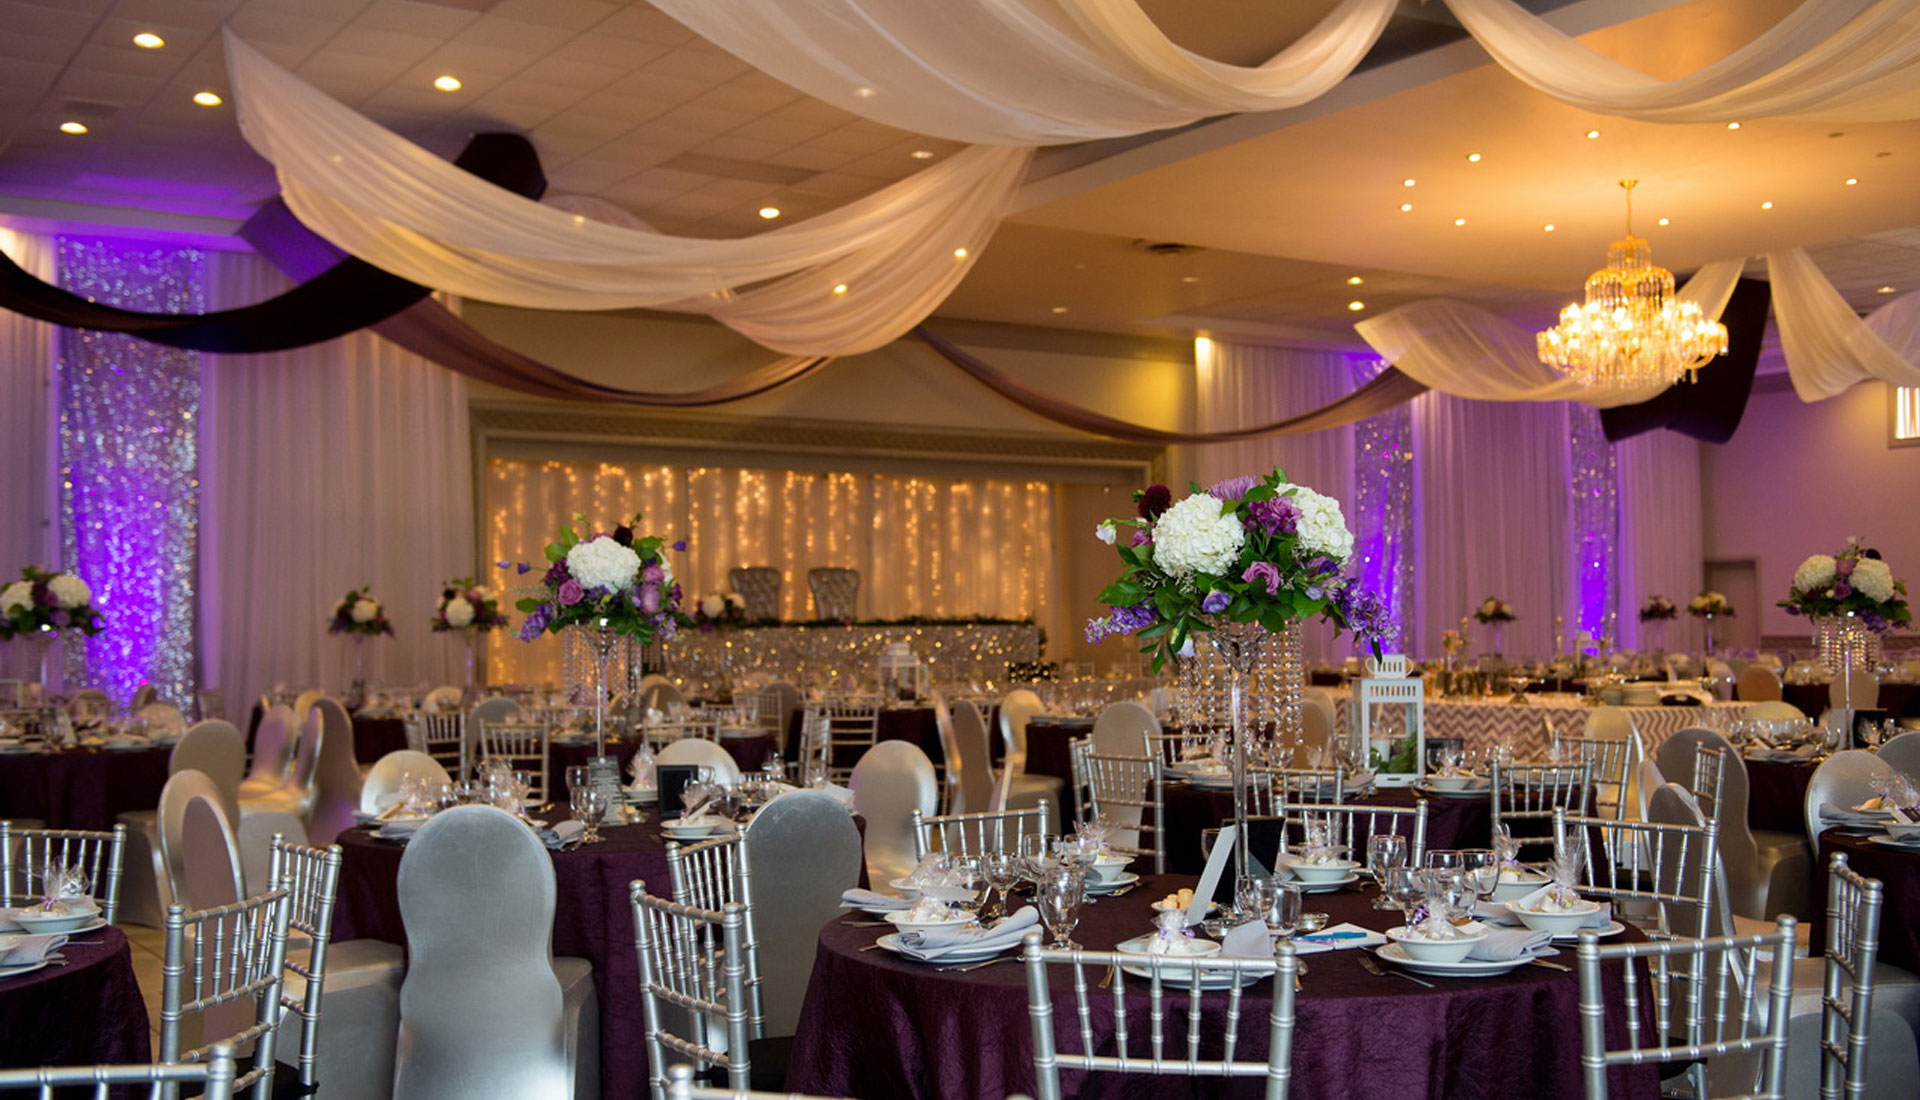 Wedding Decorations And Rentals